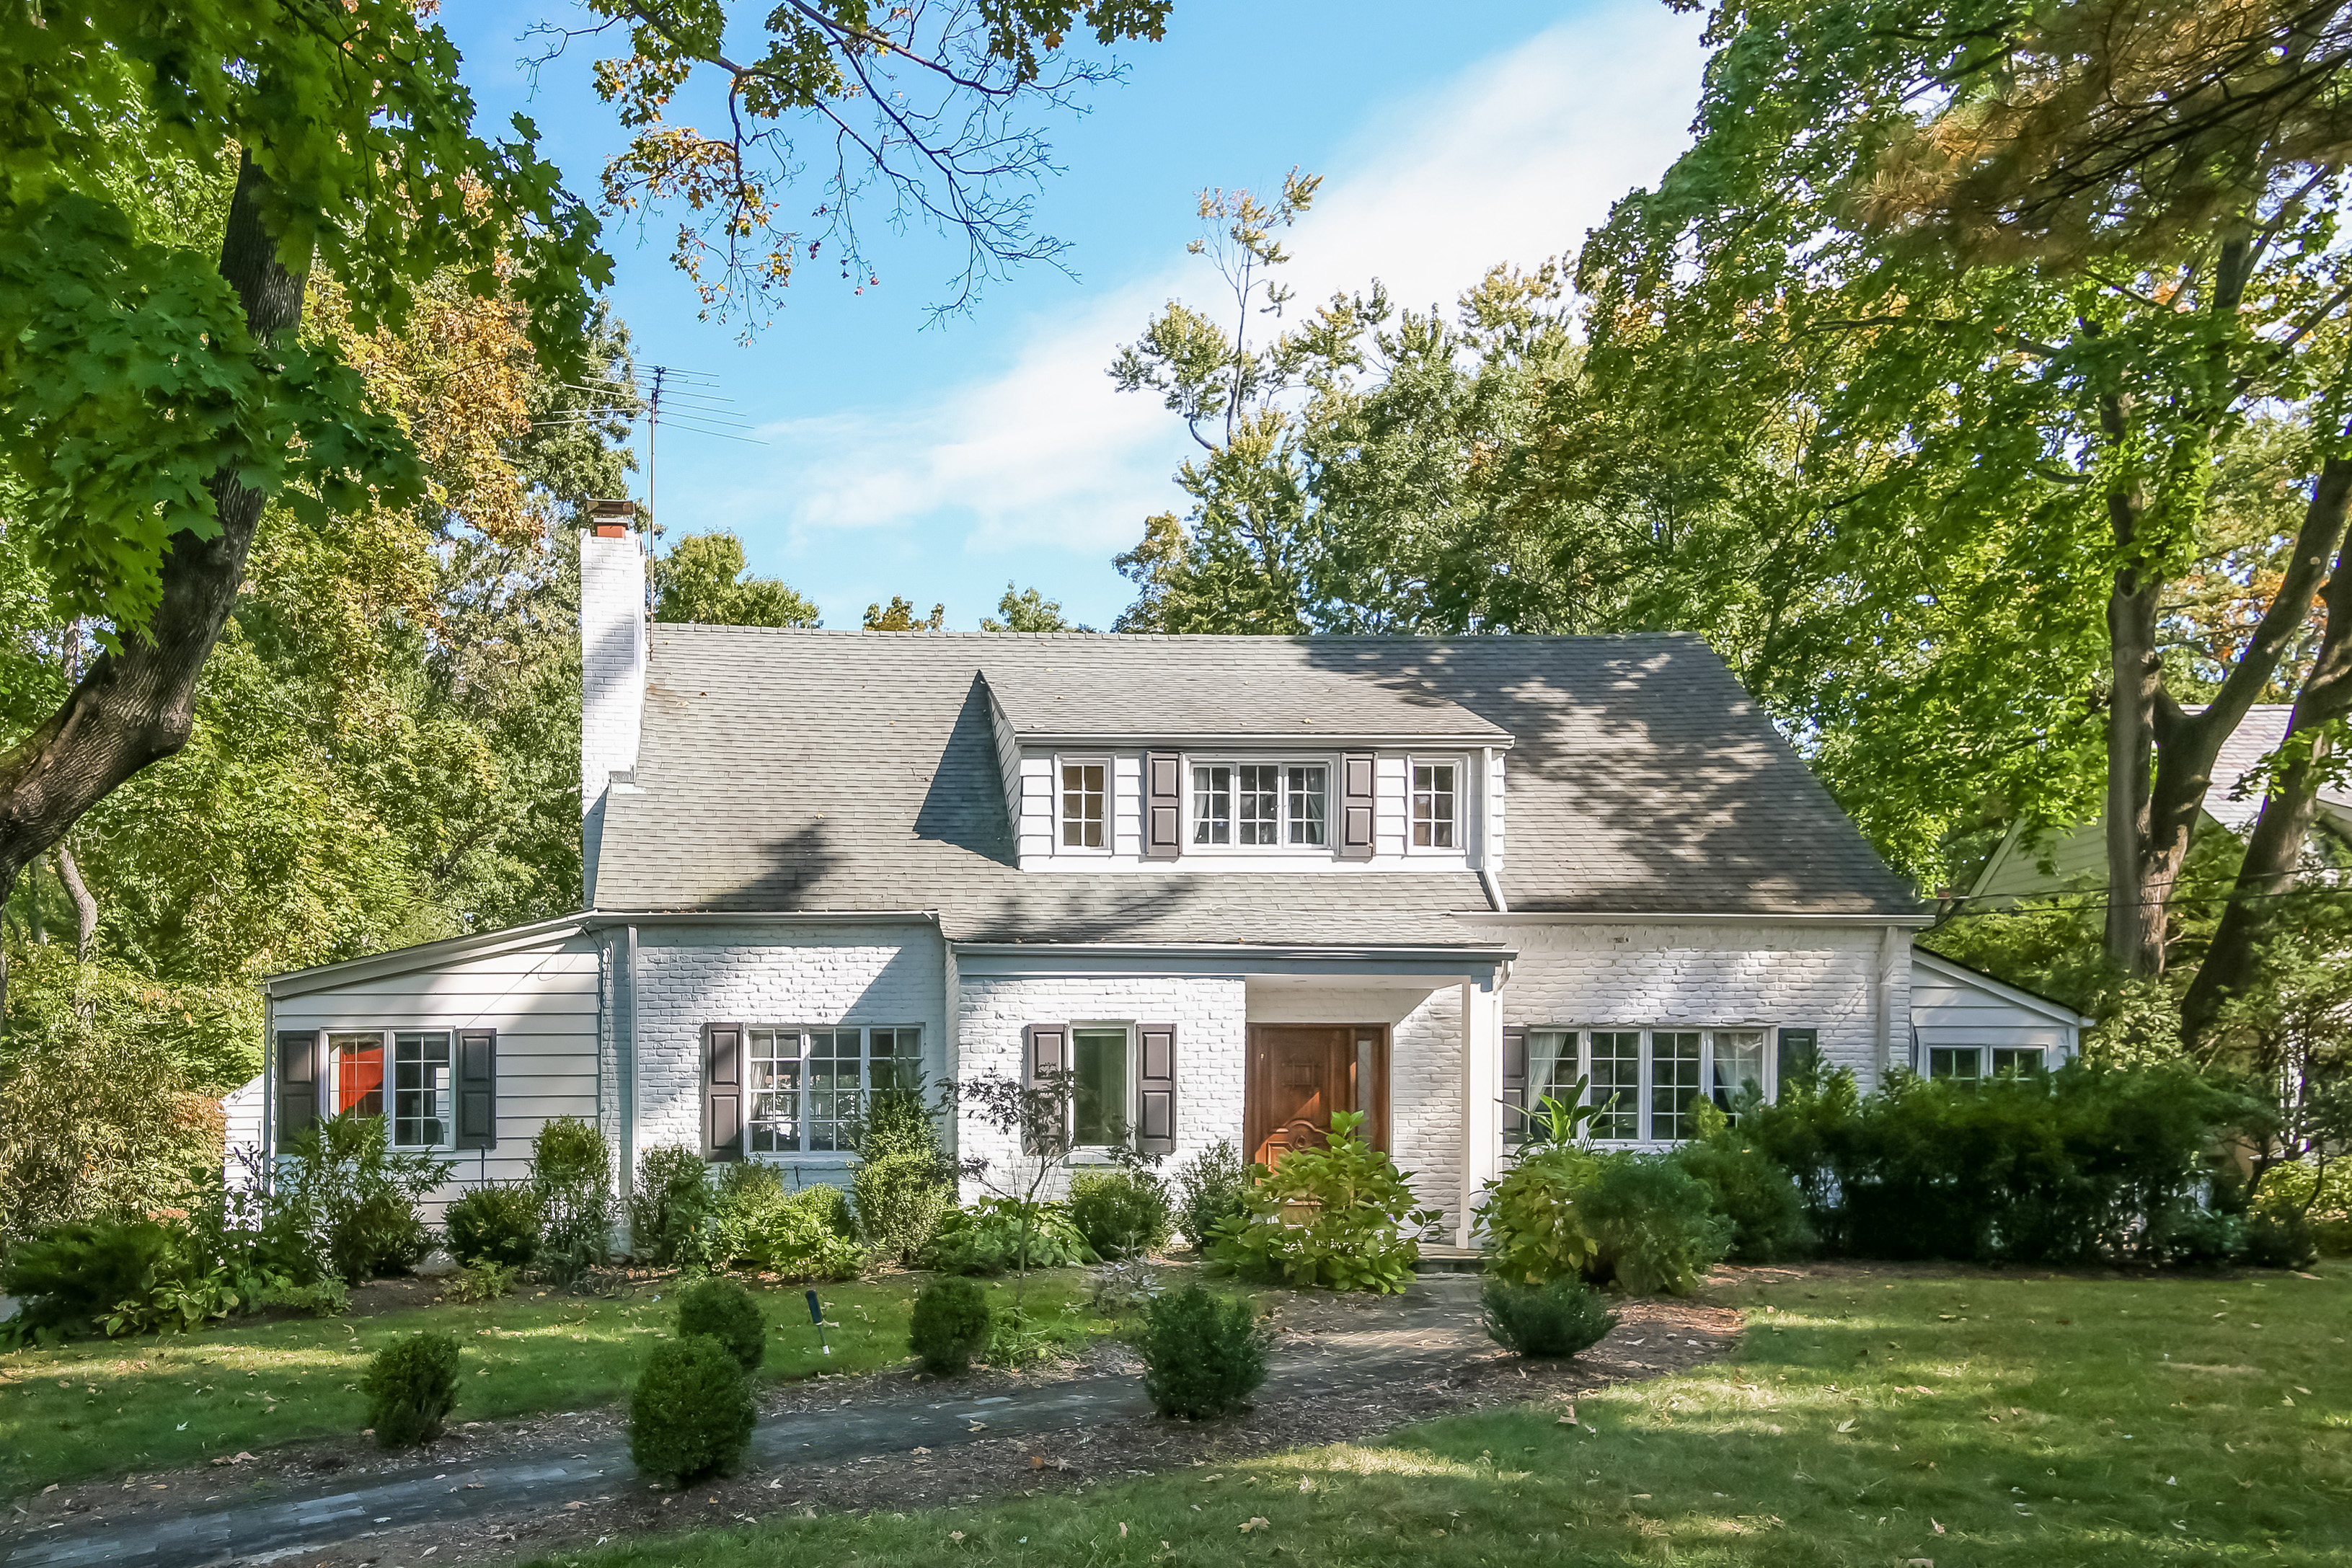 Single Family Home for Sale at Stunning Scarsdale Colonial 25 Fairview Road Scarsdale, New York, 10583 United States